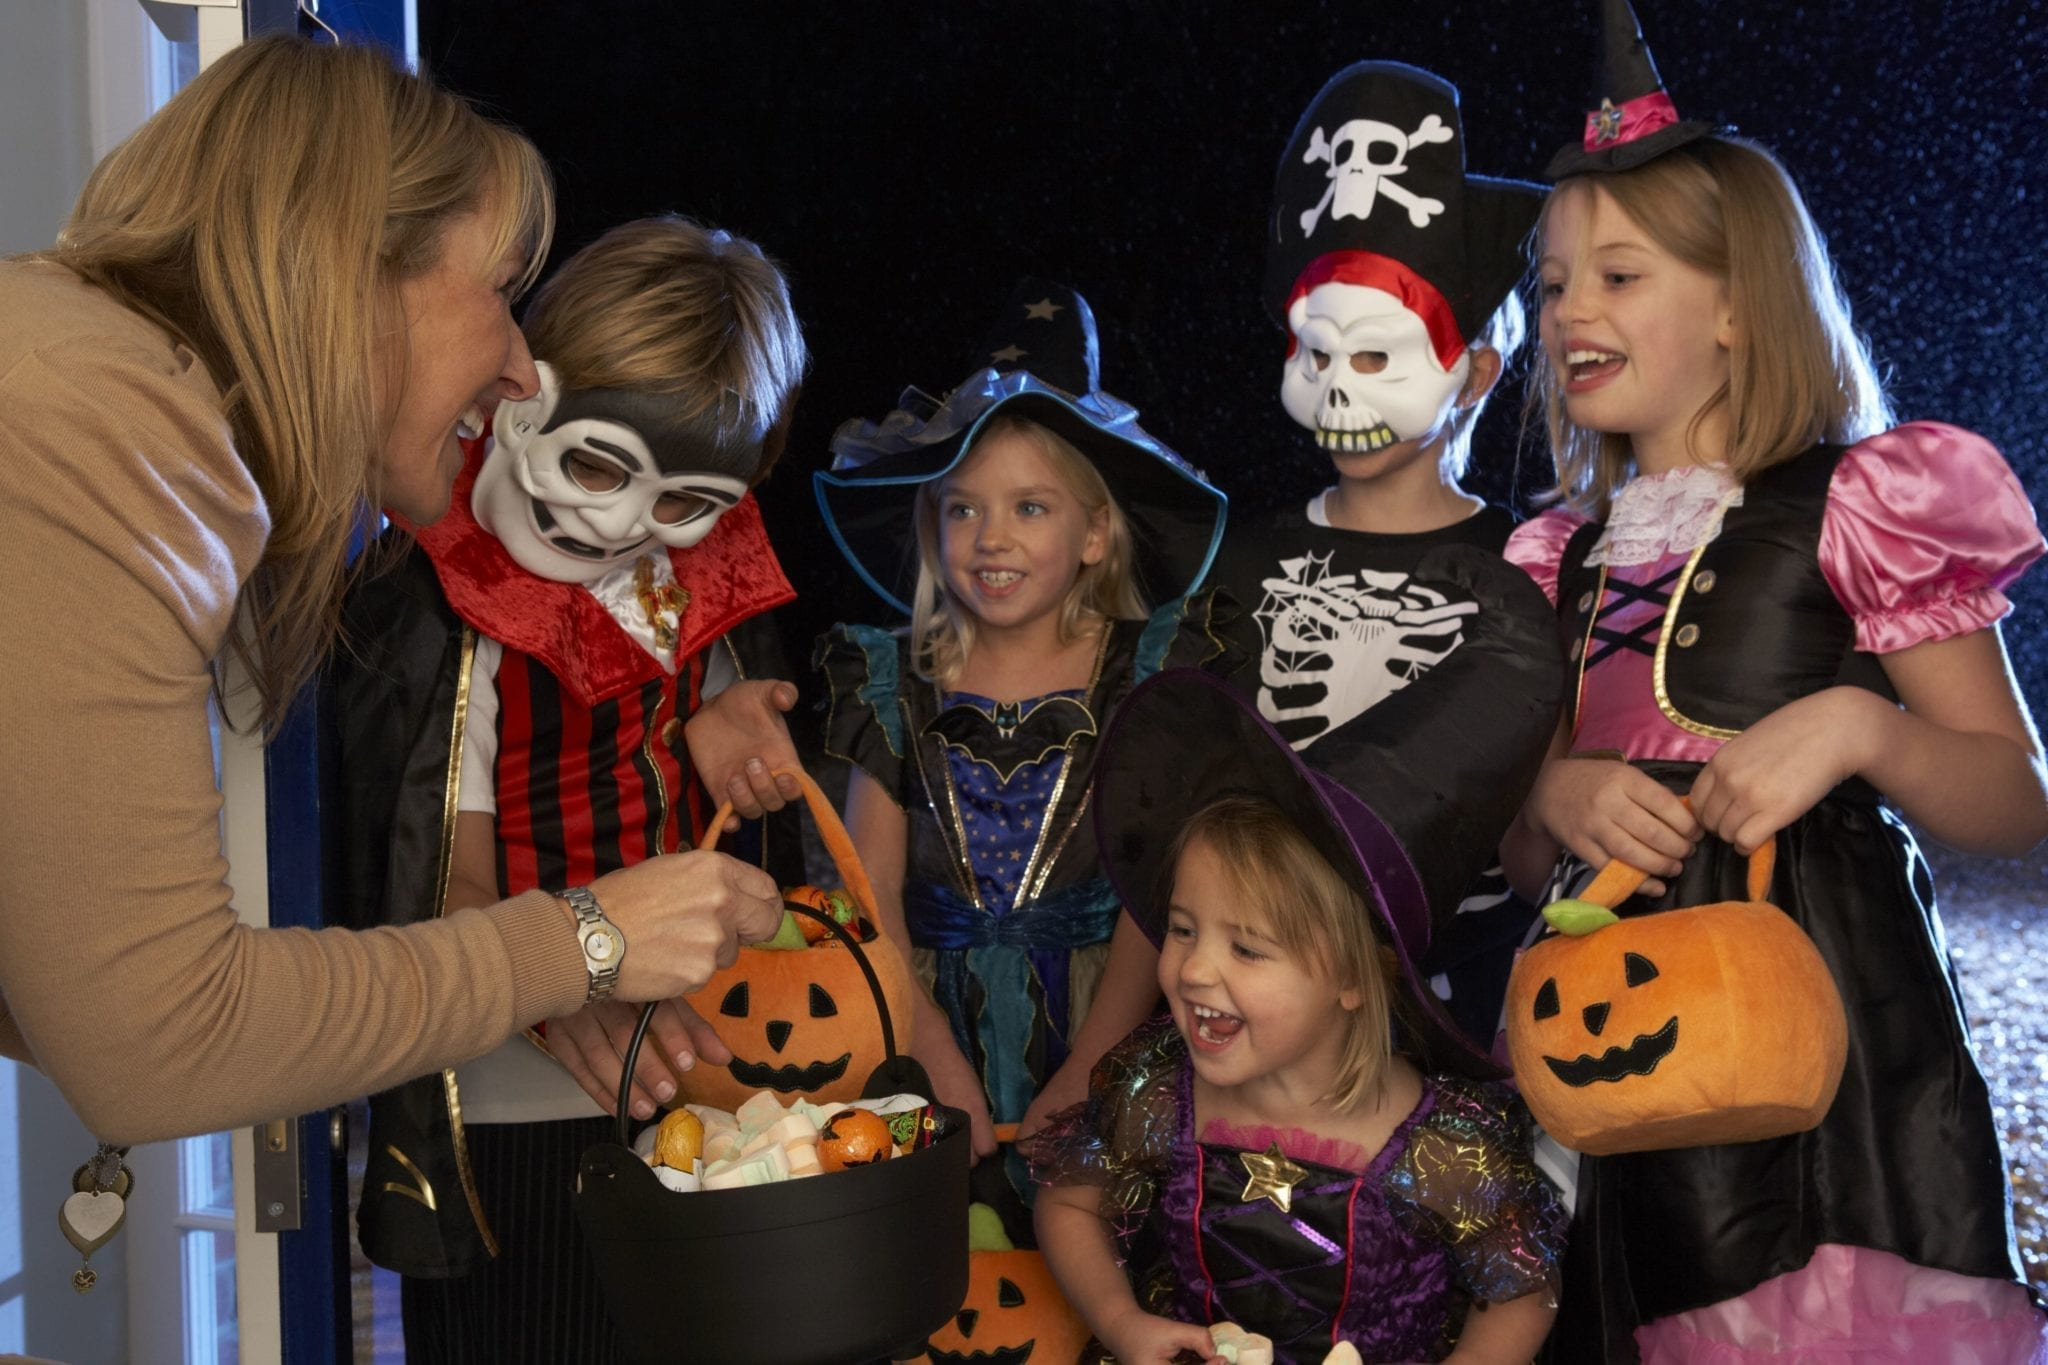 Real Halloween Scares: What Florida Parents Should Watch Out For